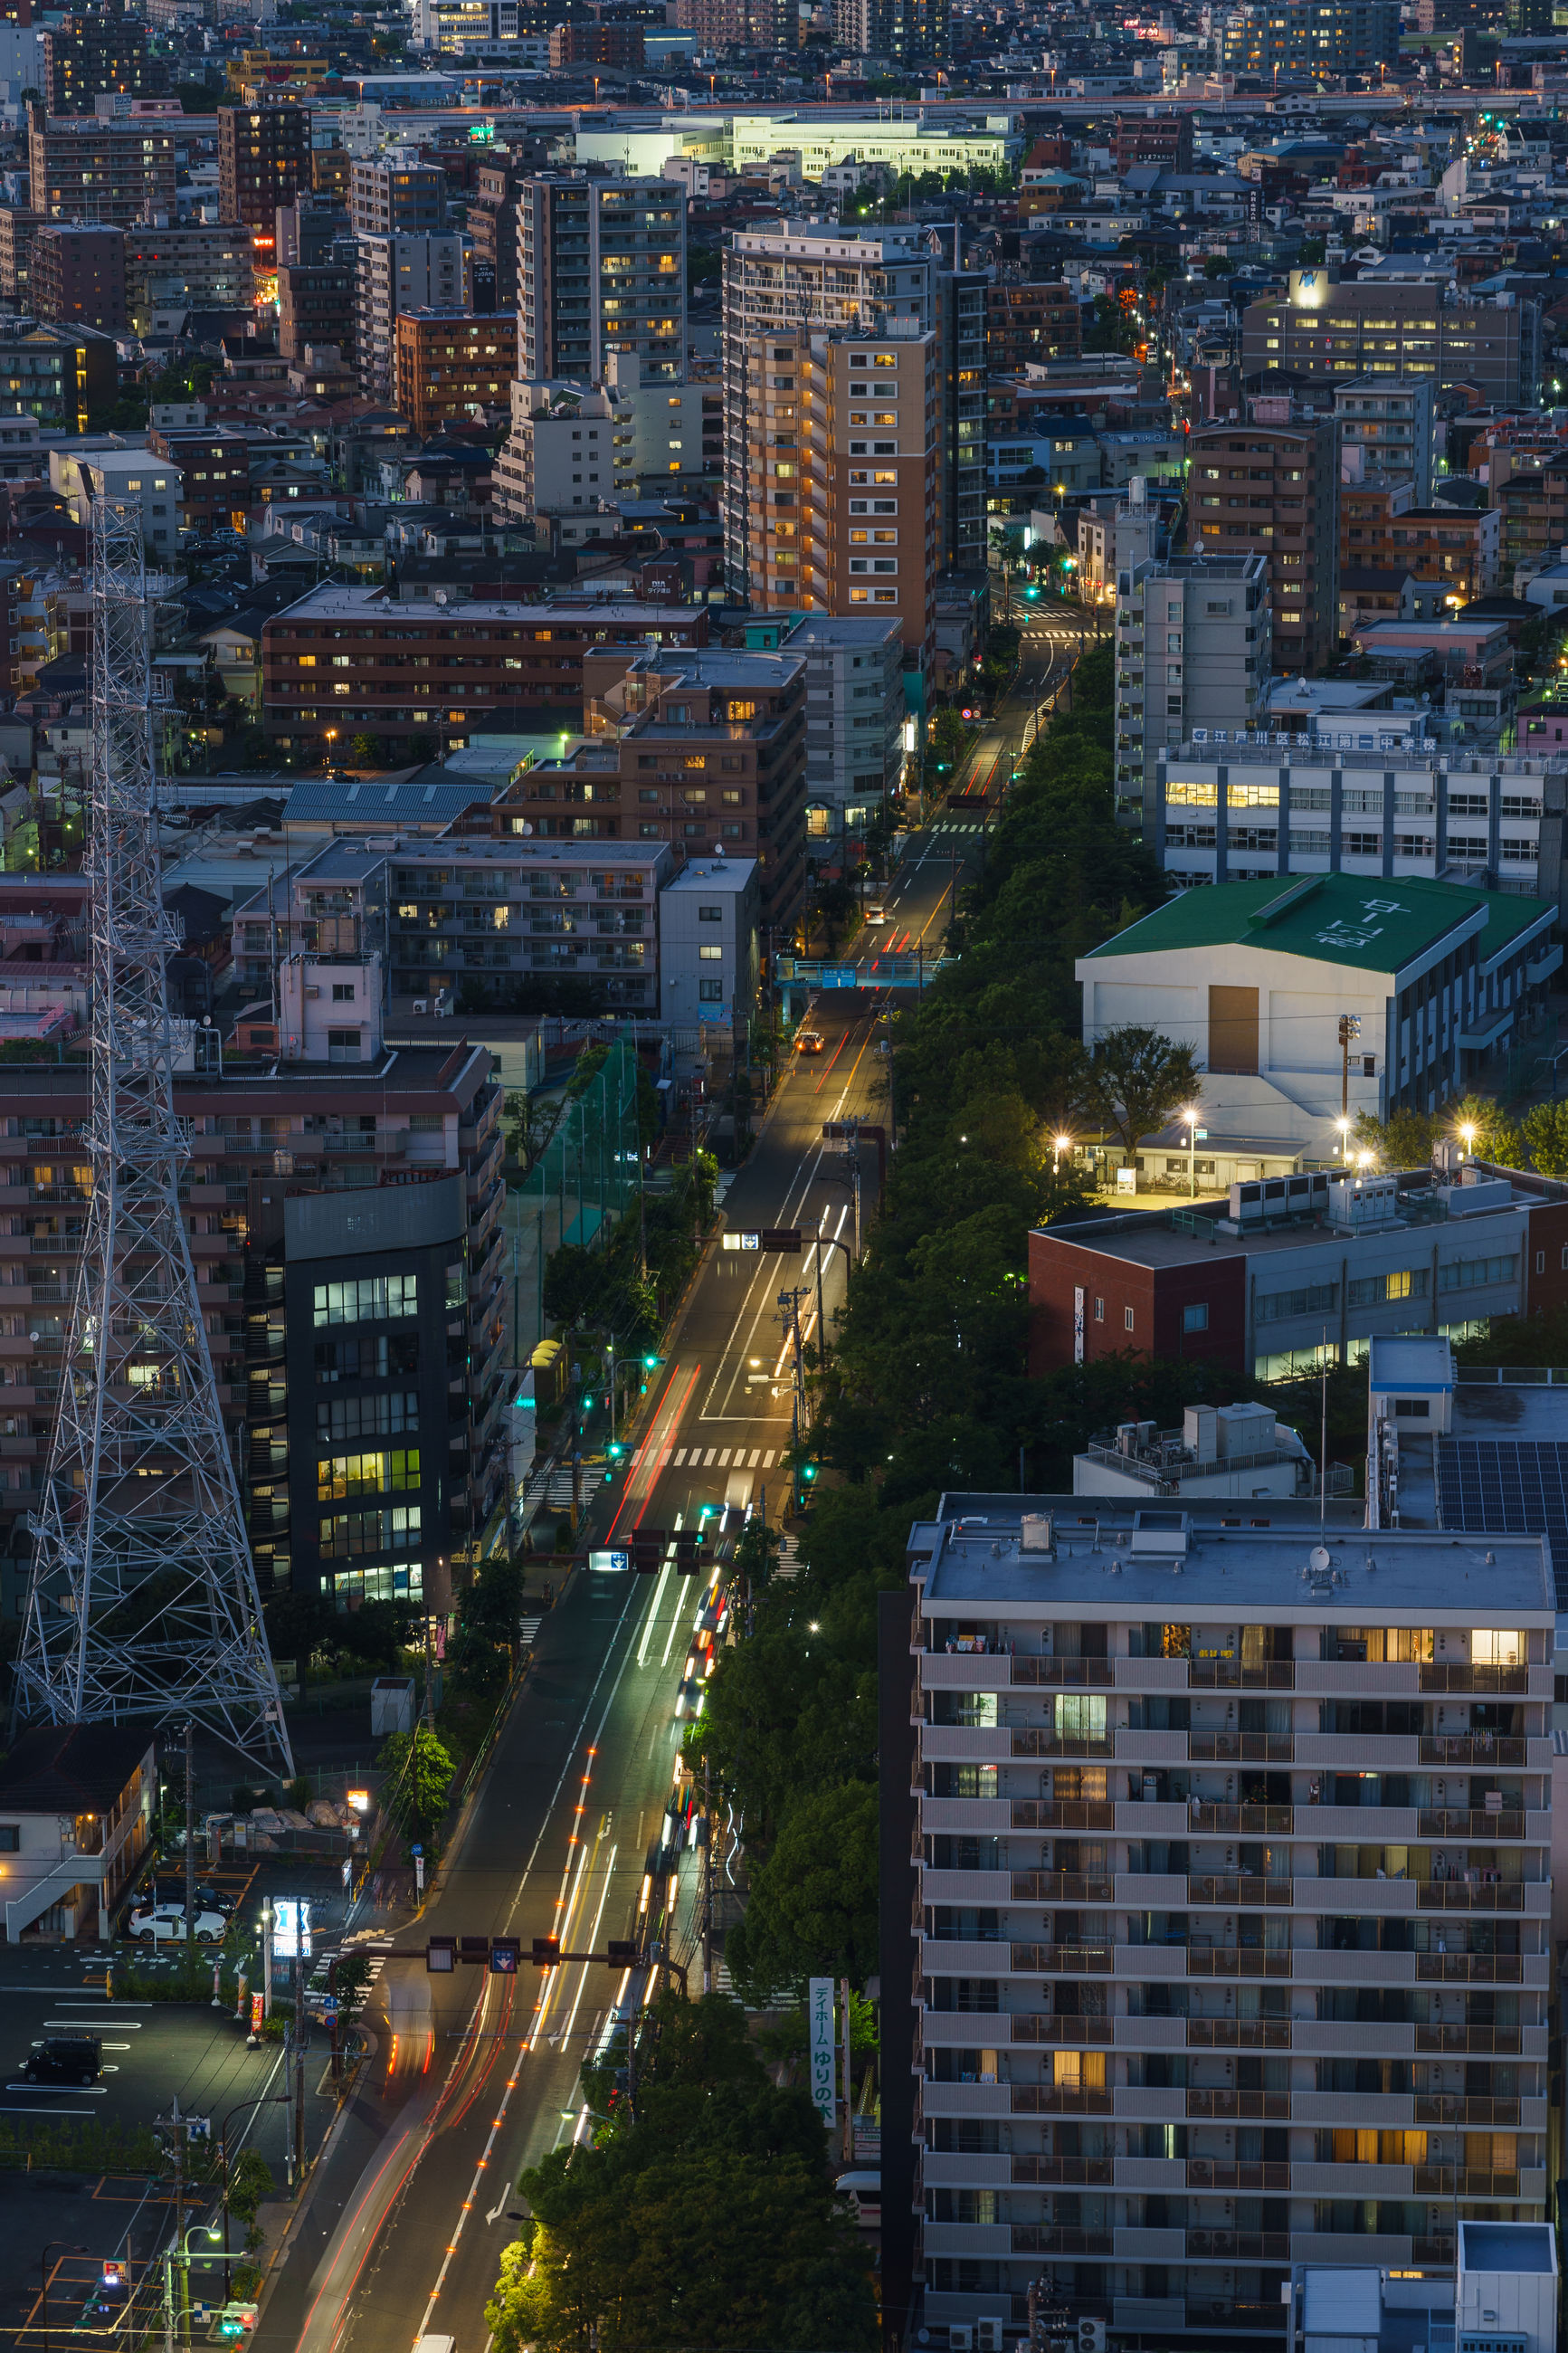 Aerial view of illuminated buildings in city at dusk